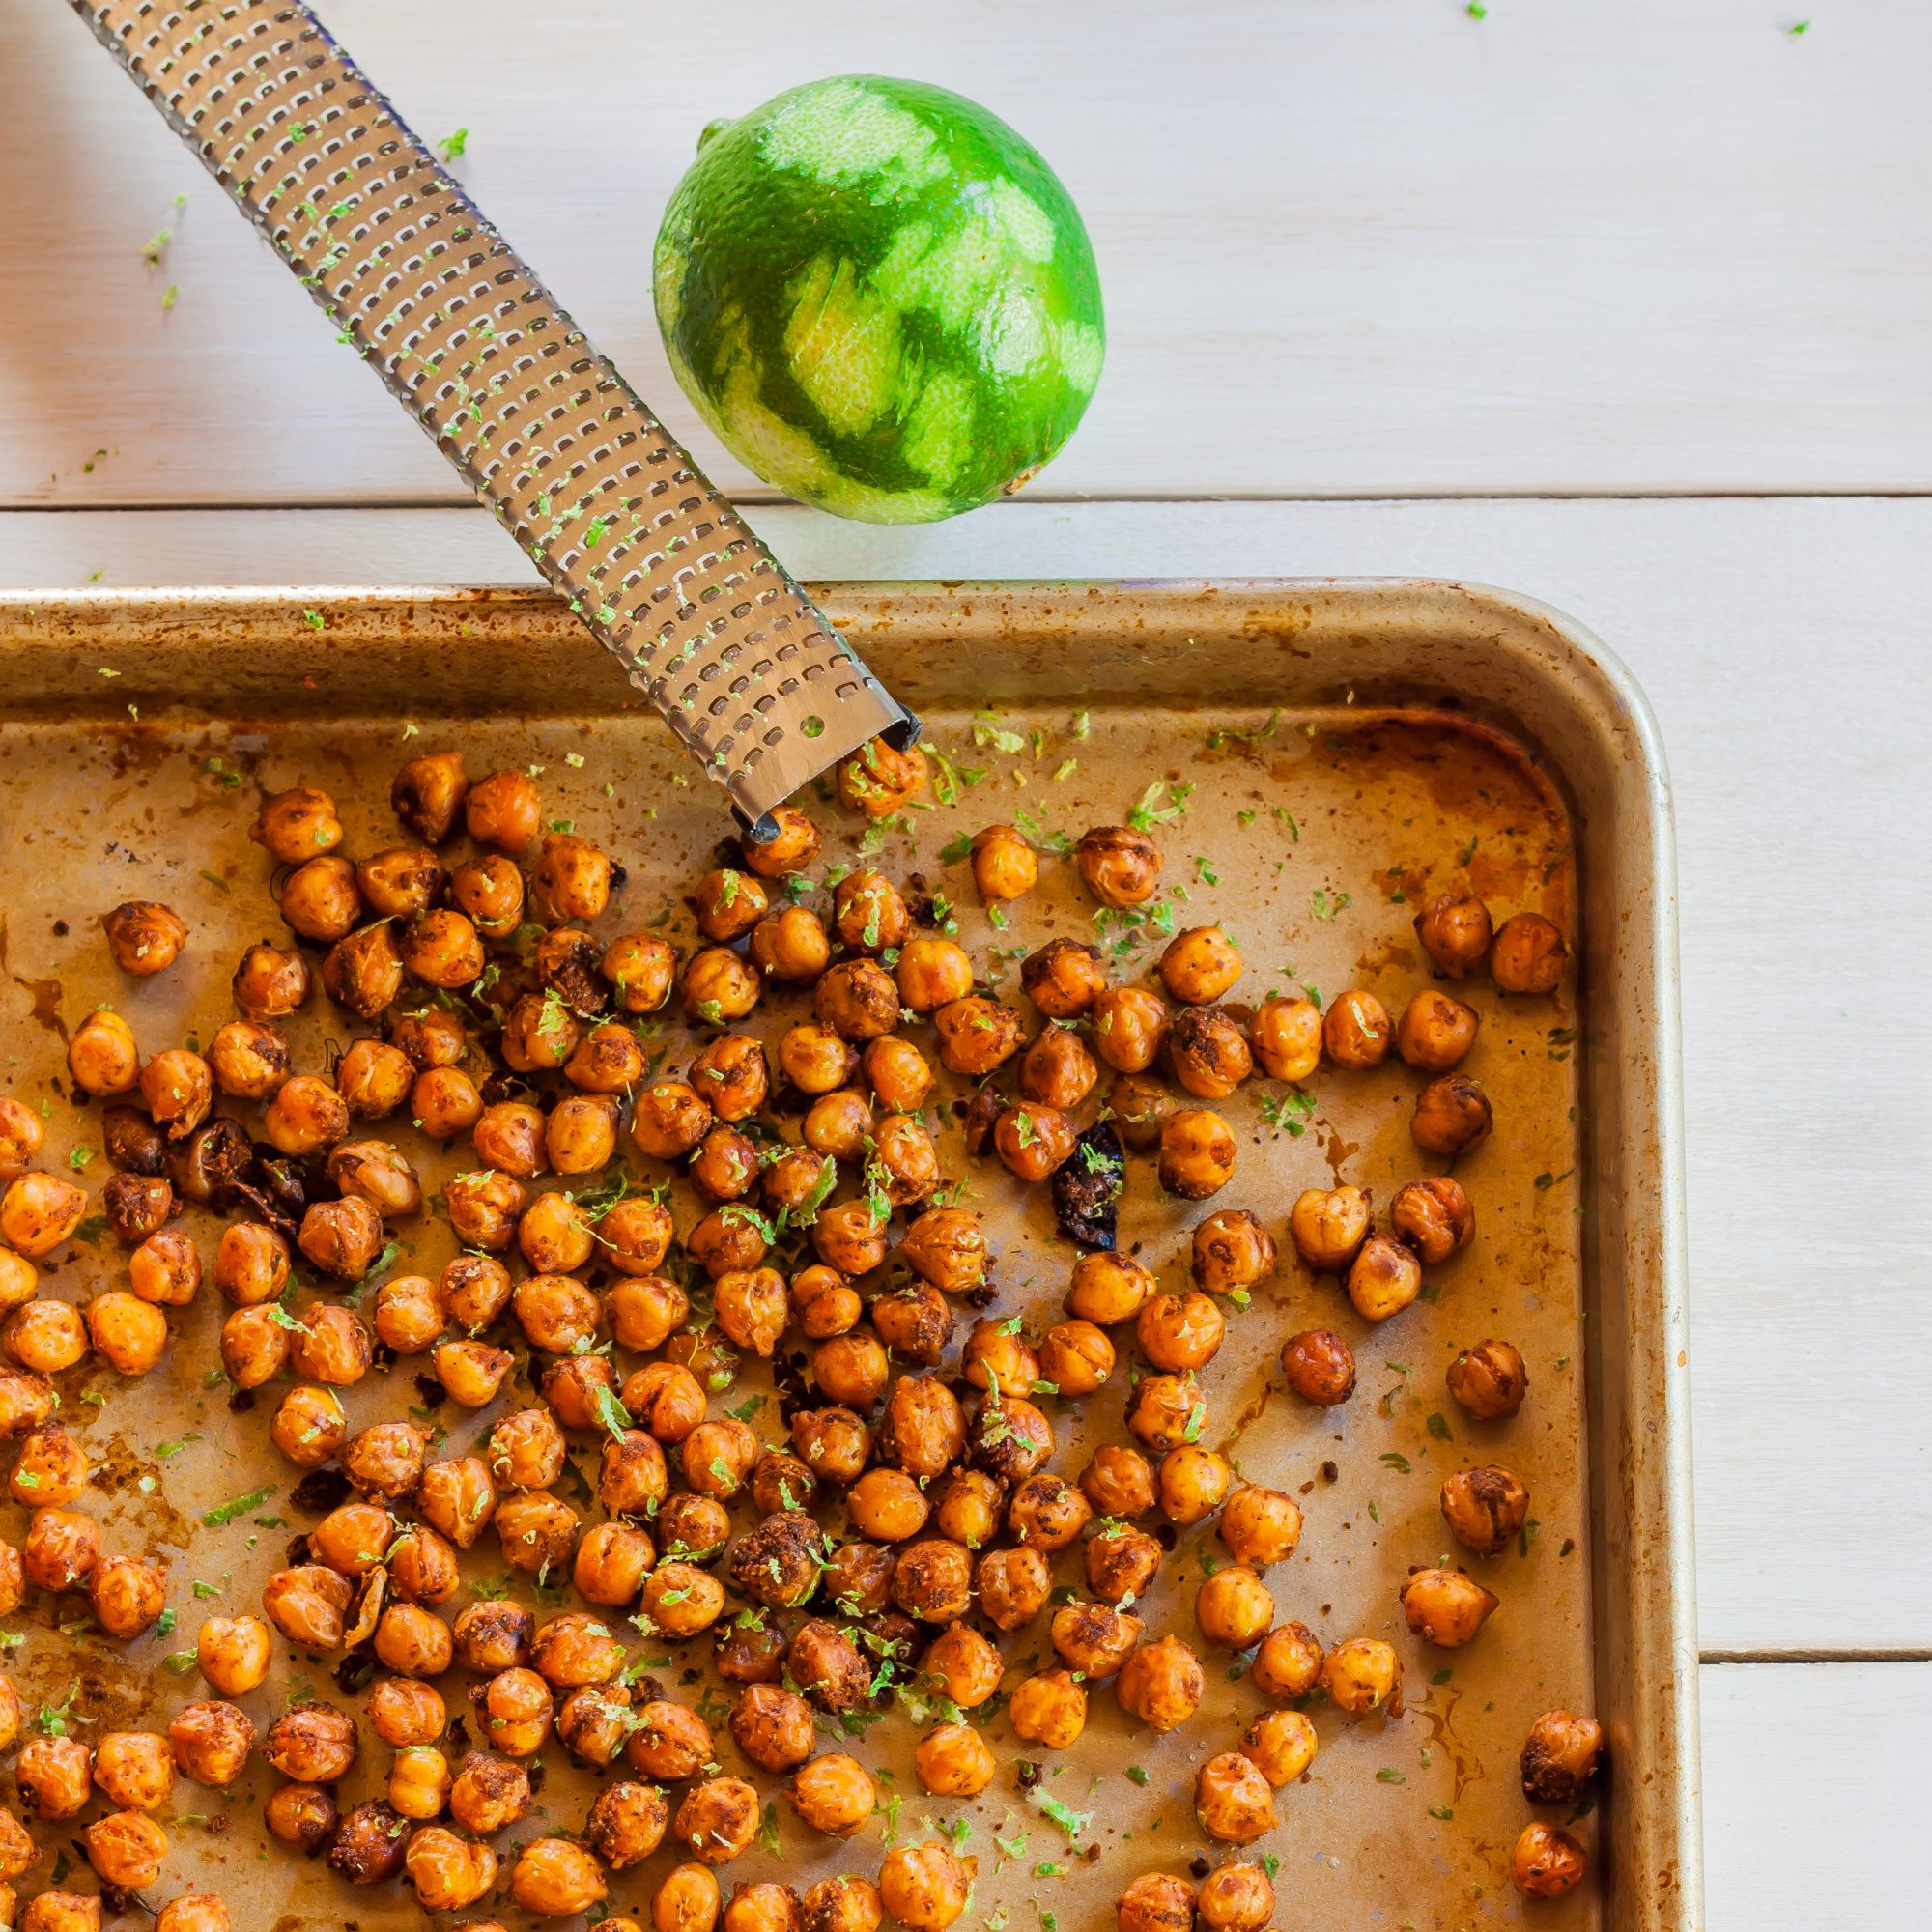 Southwest Spiced Chickpeas with Cumin and Lime